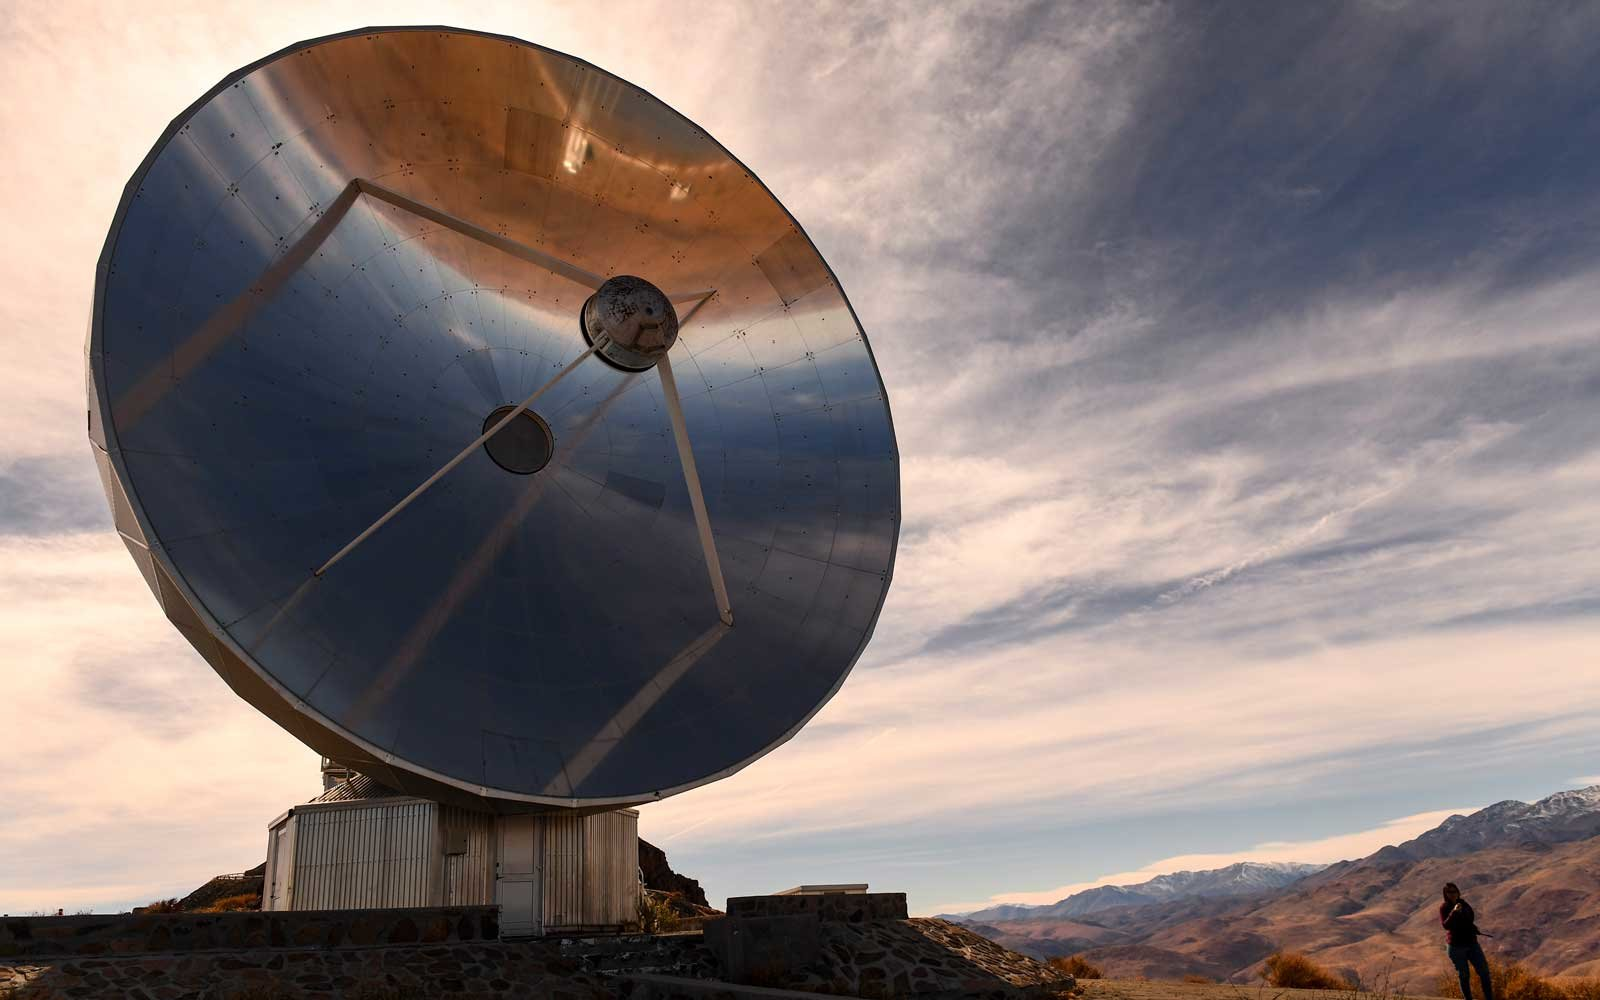 Picture of the 15-metre Swedish-ESO Submillimeter Telescope (SEST) at the European Southern Observatory's (ESO) La Silla facility in La Higuera, Coquimbo Region, about 600 km north of Santiago in the depths of Chile's bone-dry Atacama desert, taken on Jun